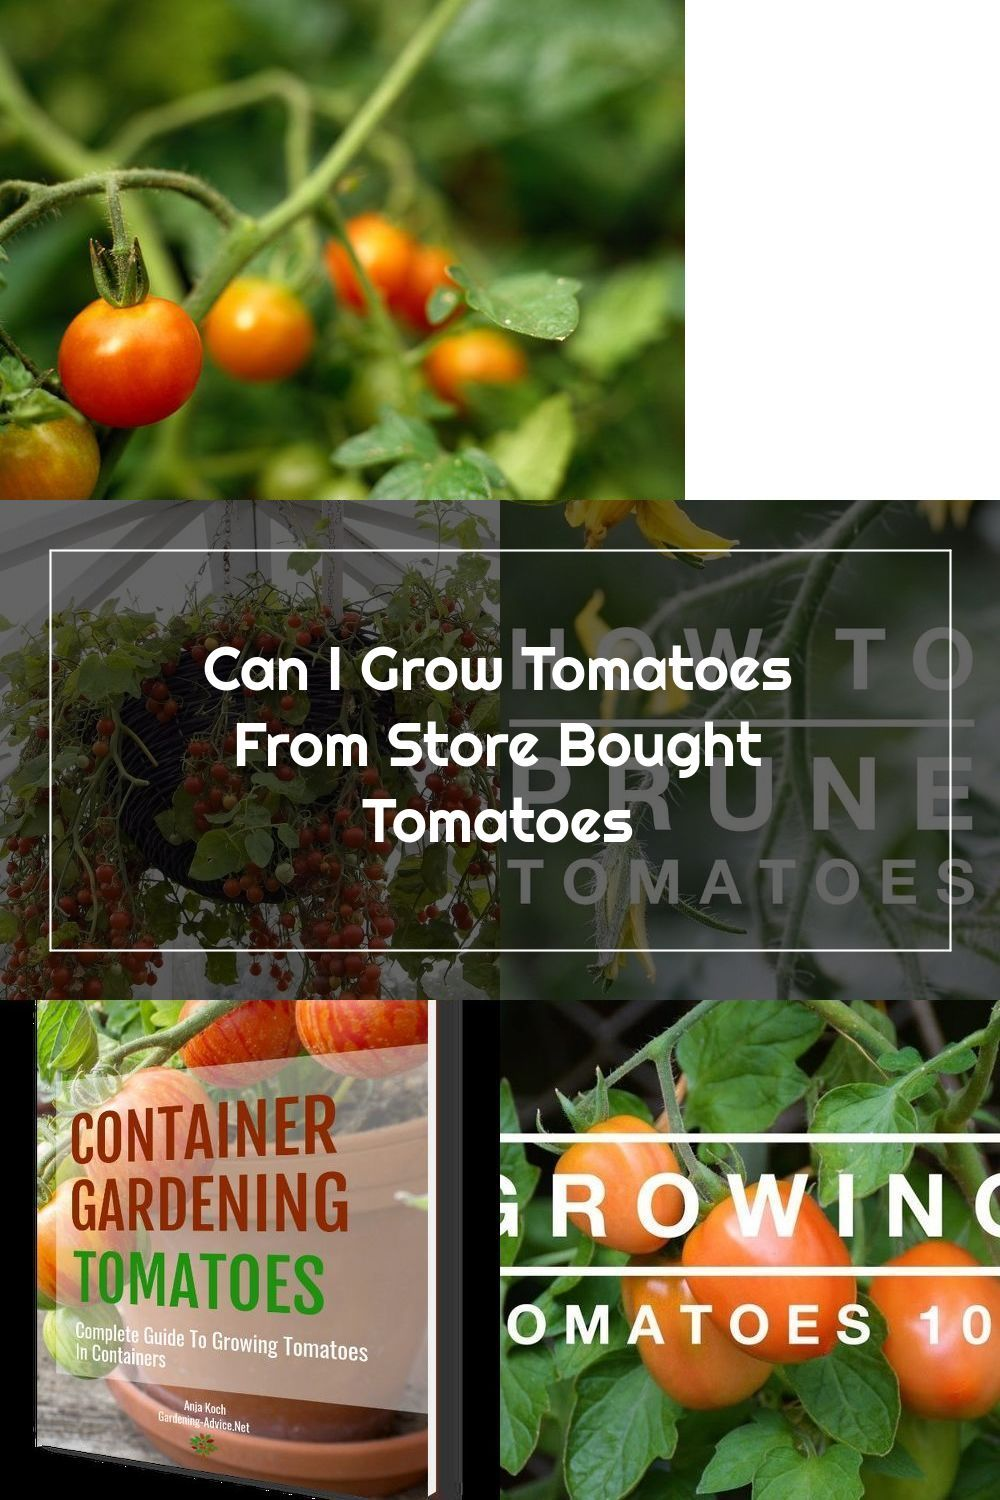 Can I Grow Tomatoes From Store Bought Tomatoes Ehow In 2020 Growing Tomatoes Tomato Container Gardening Growing